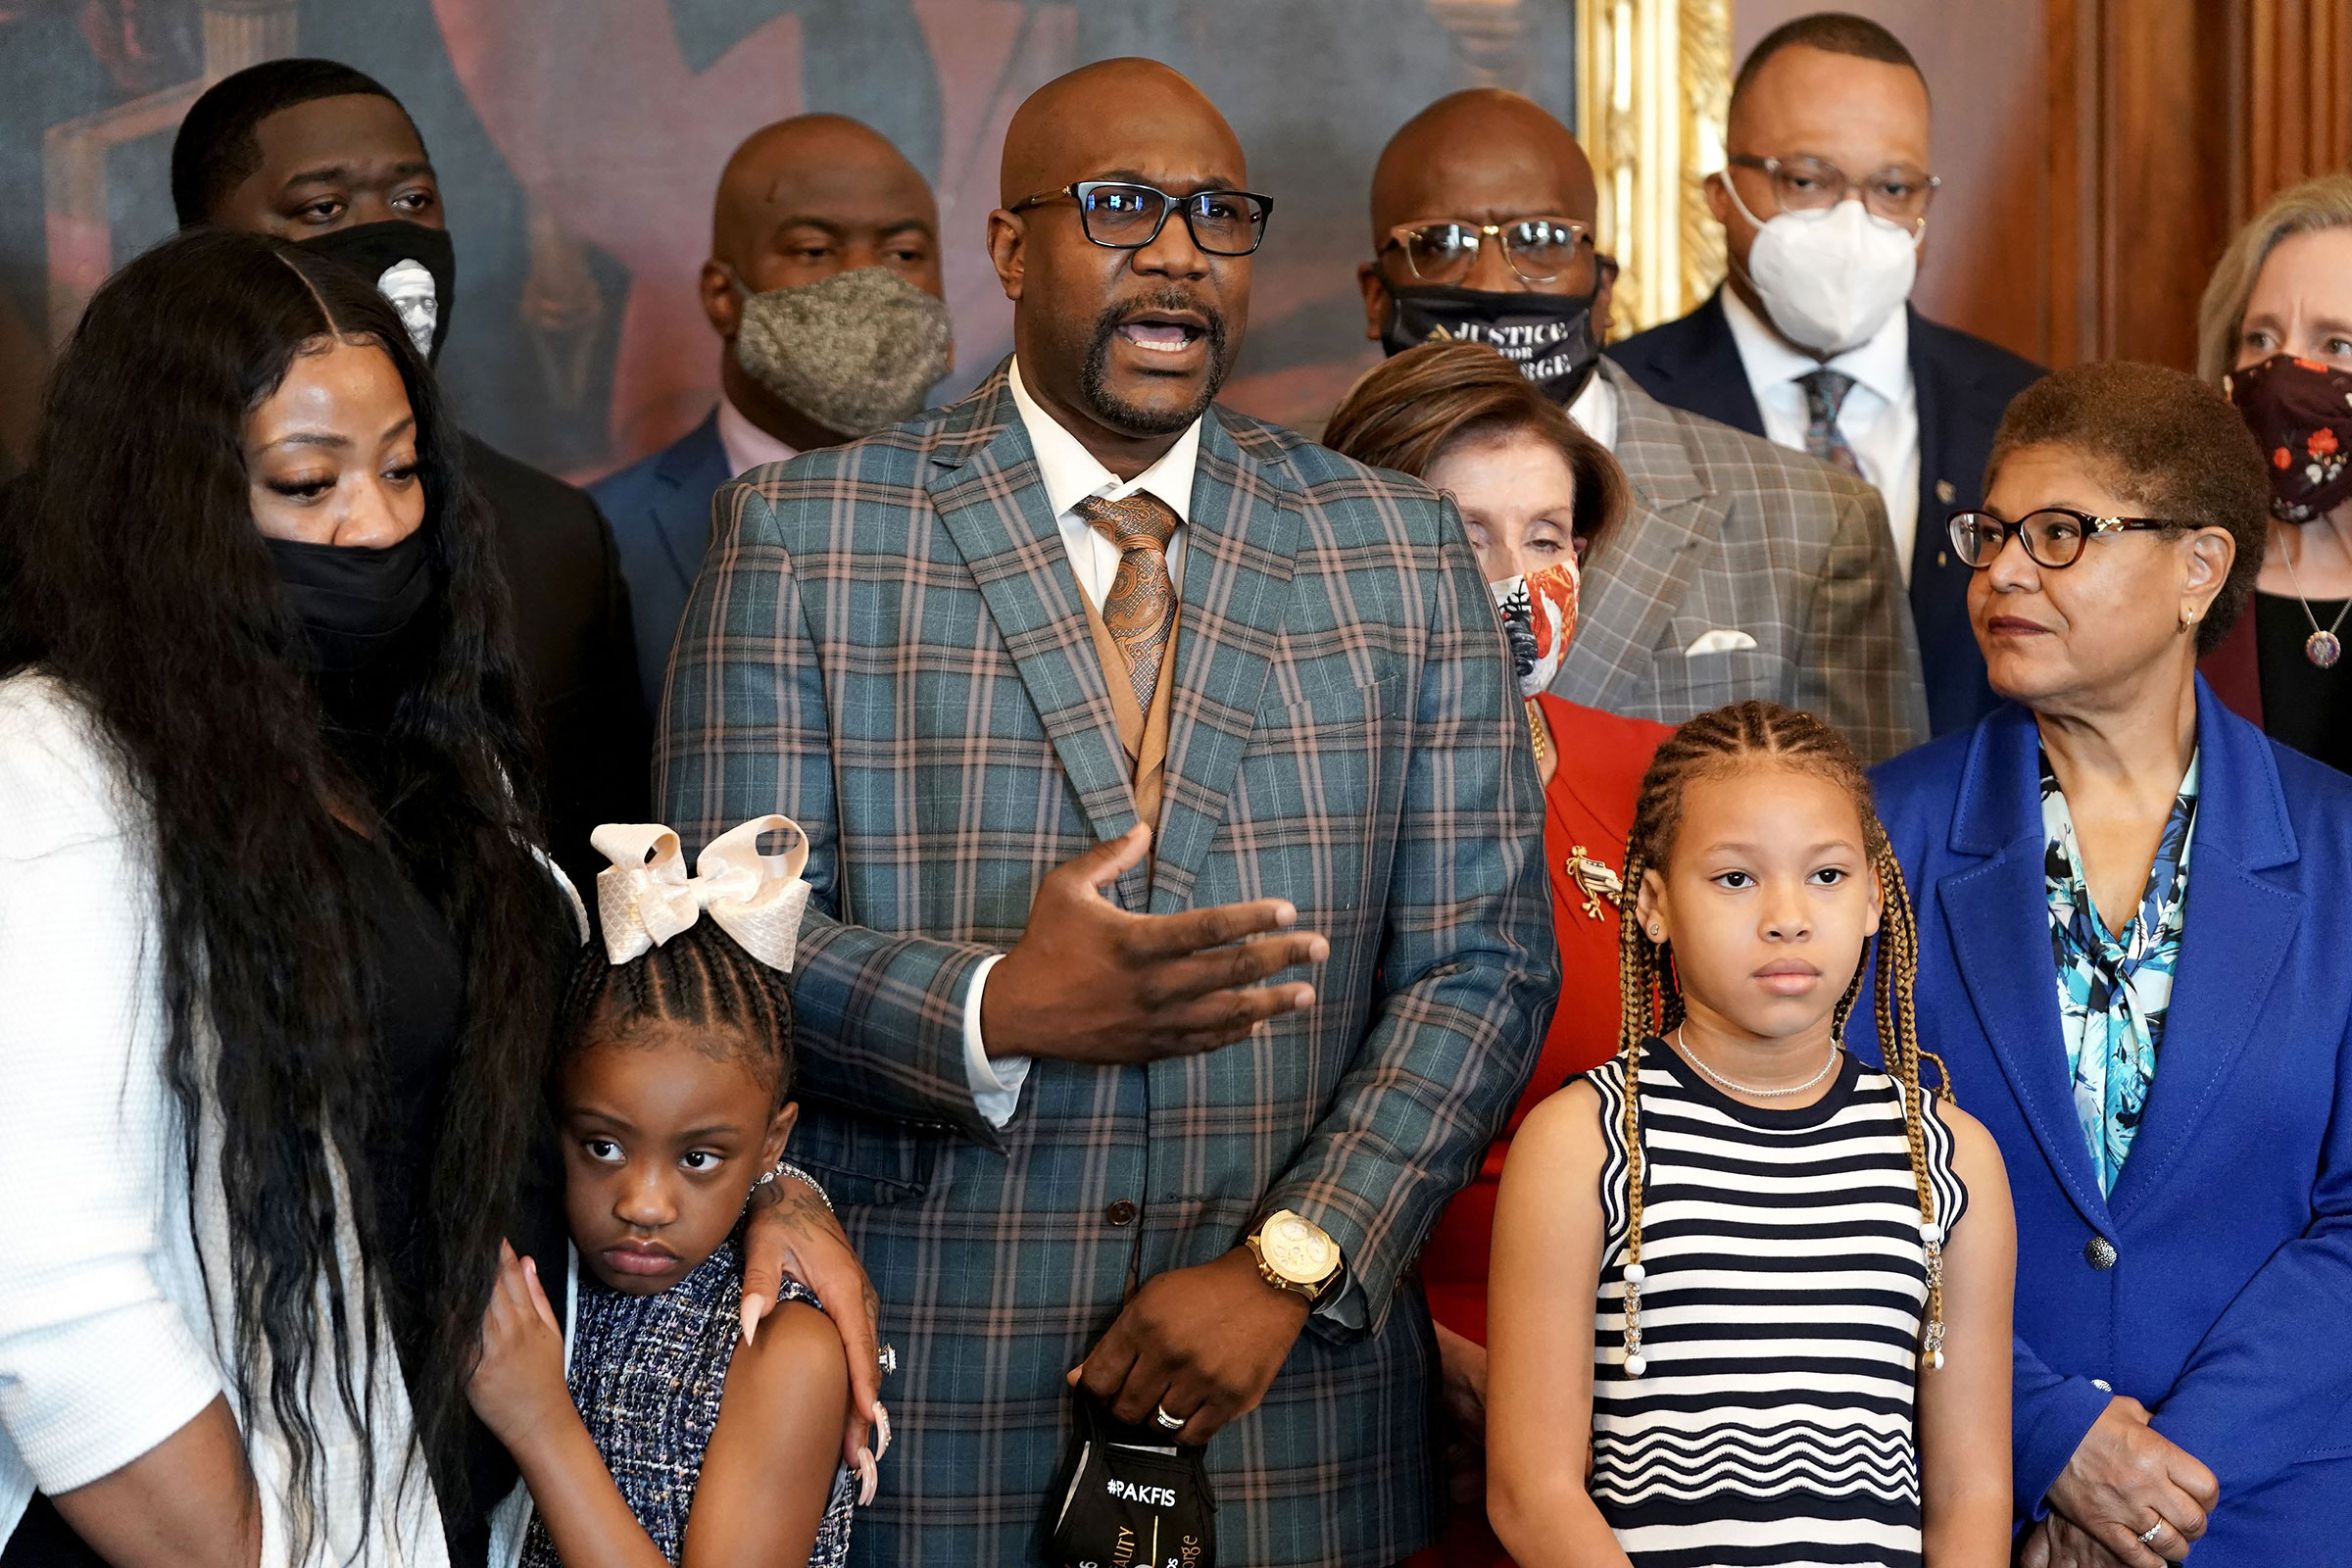 Philonise Floyd, the brother of George Floyd, speaks as he and members of the Floyd family meet with House Speaker Nancy Pelosi and Rep. Karen Bass in the Rayburn Room of the Capitol in Washington, on May 25, 2021.